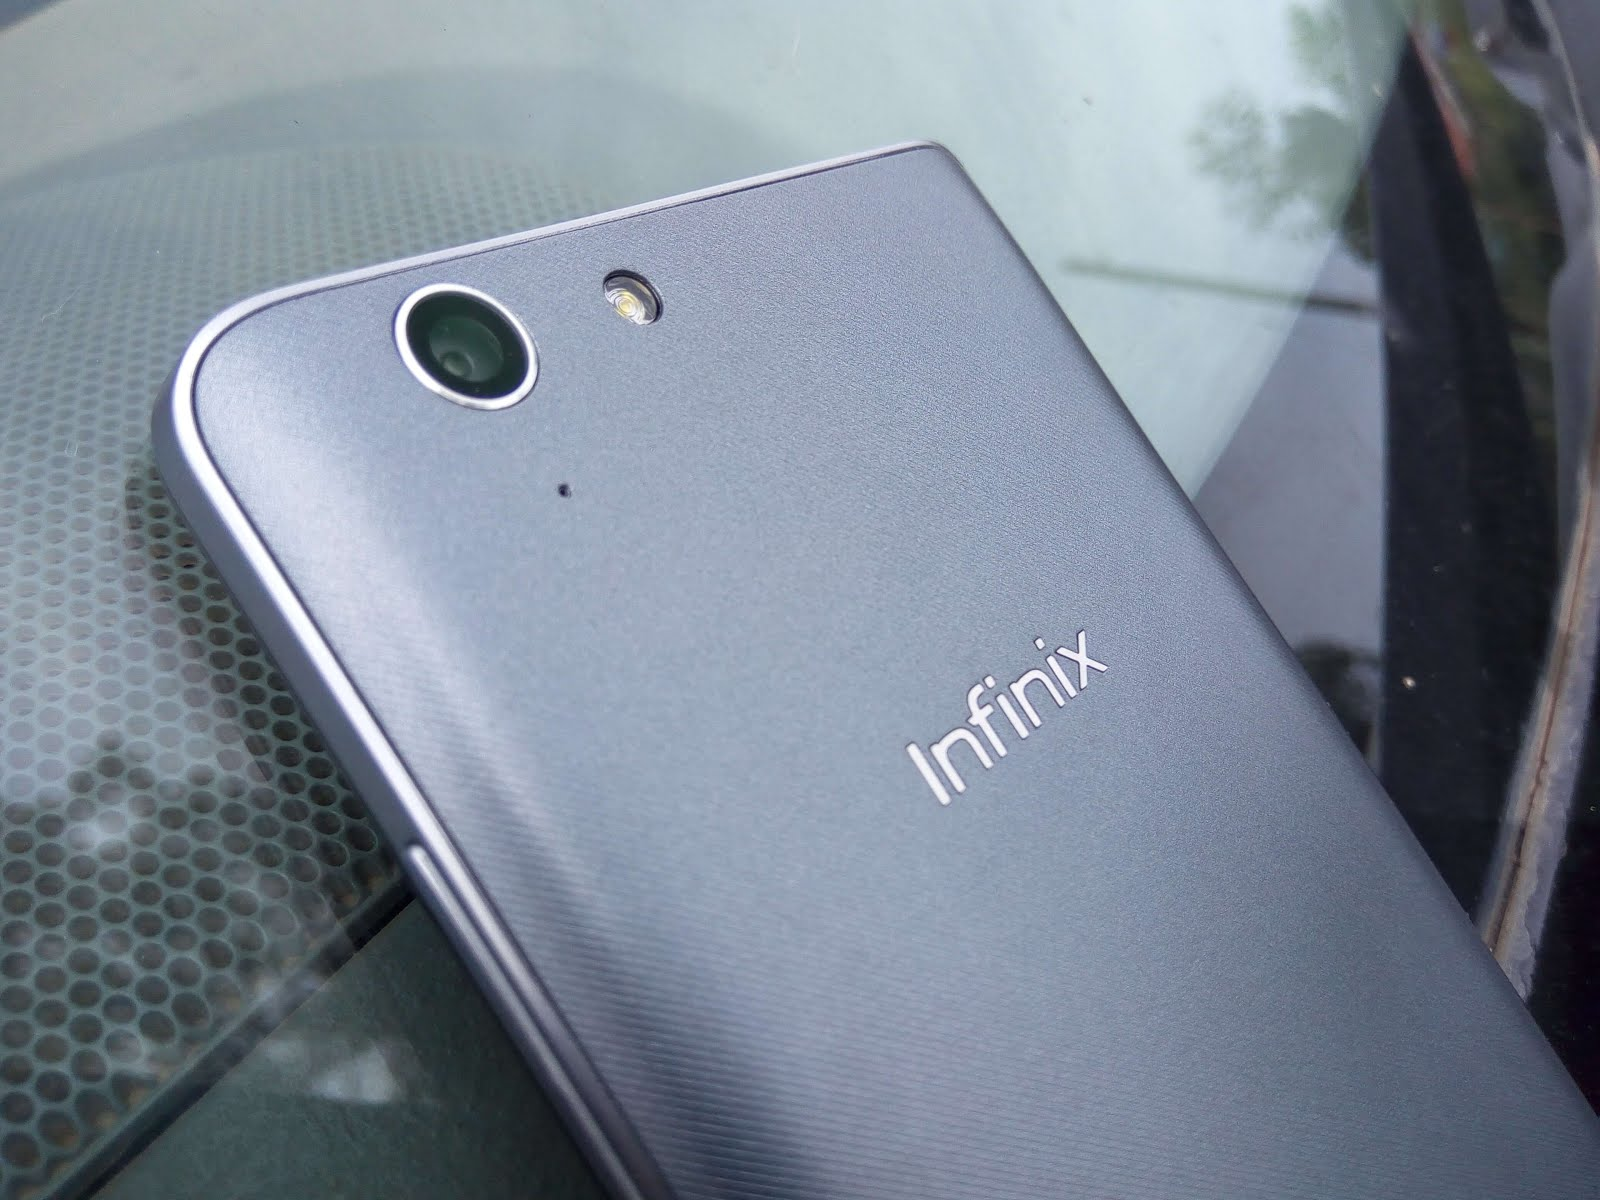 How to hard reset Infinix hot 3 X554 » ChuksGuide